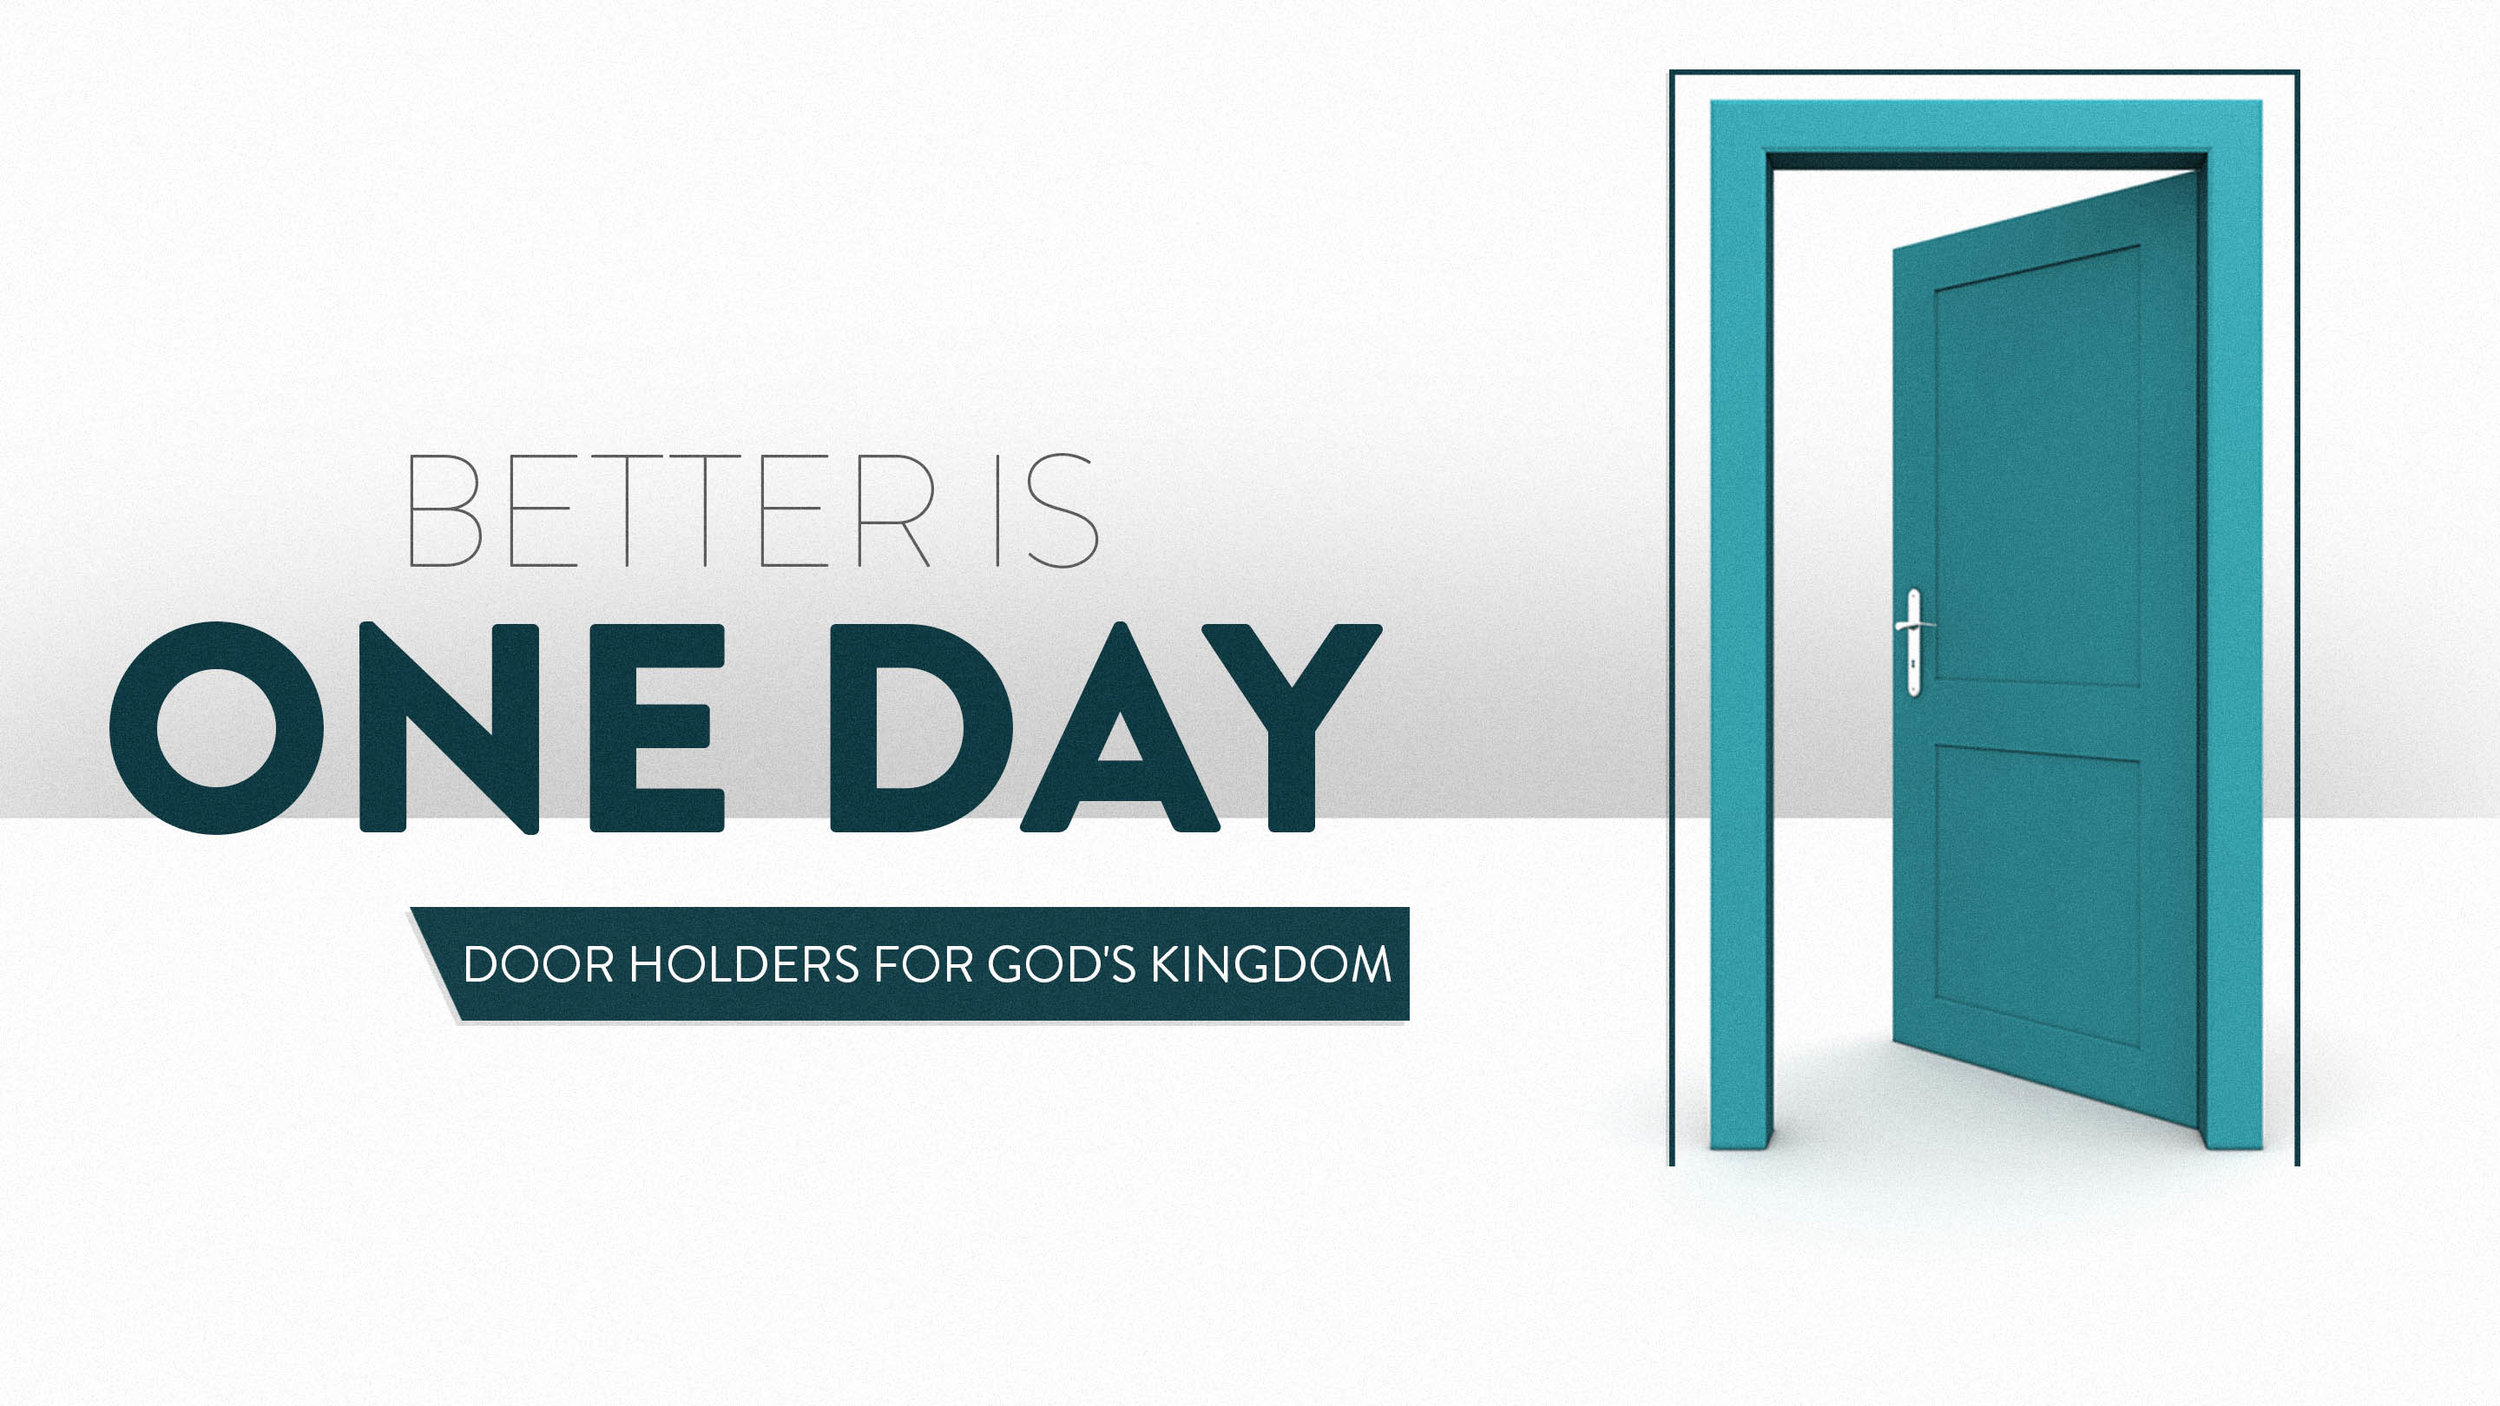 """BETTER IS ONE DAY: Door Holders for GOD's Kingdom   At Younger Generation Church, we take great pleasure in opening the door for others to experience Jesus. #Here2Help #IAmYG  Join us for our new series, """"Better is One Day,"""" Saturdays, 10:15AM CST, ygchurch.com #ygchurch  """"Just one day in the courts of Your temple is greater than a thousand anywhere else. I would rather serve as a porter at my God's doorstep than live in luxury in the house of the wicked."""" —Psalm 84:10 [Voice]"""